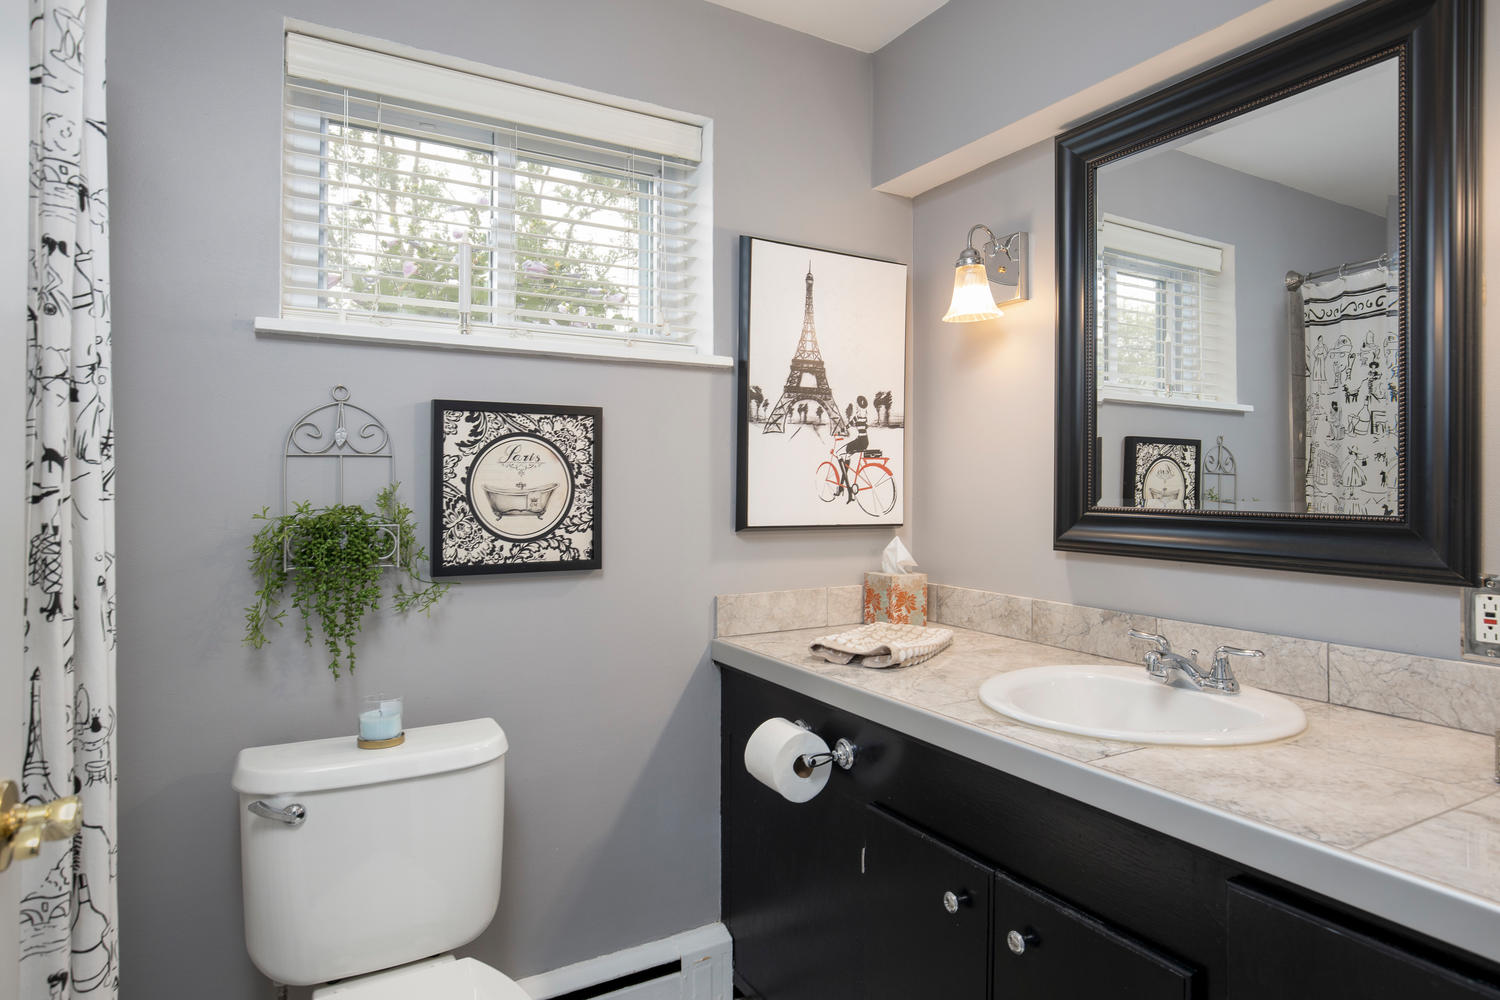 5258 Armor Duells Rd Orchard-large-023-010-Bathroom-1500×1000-72dpi